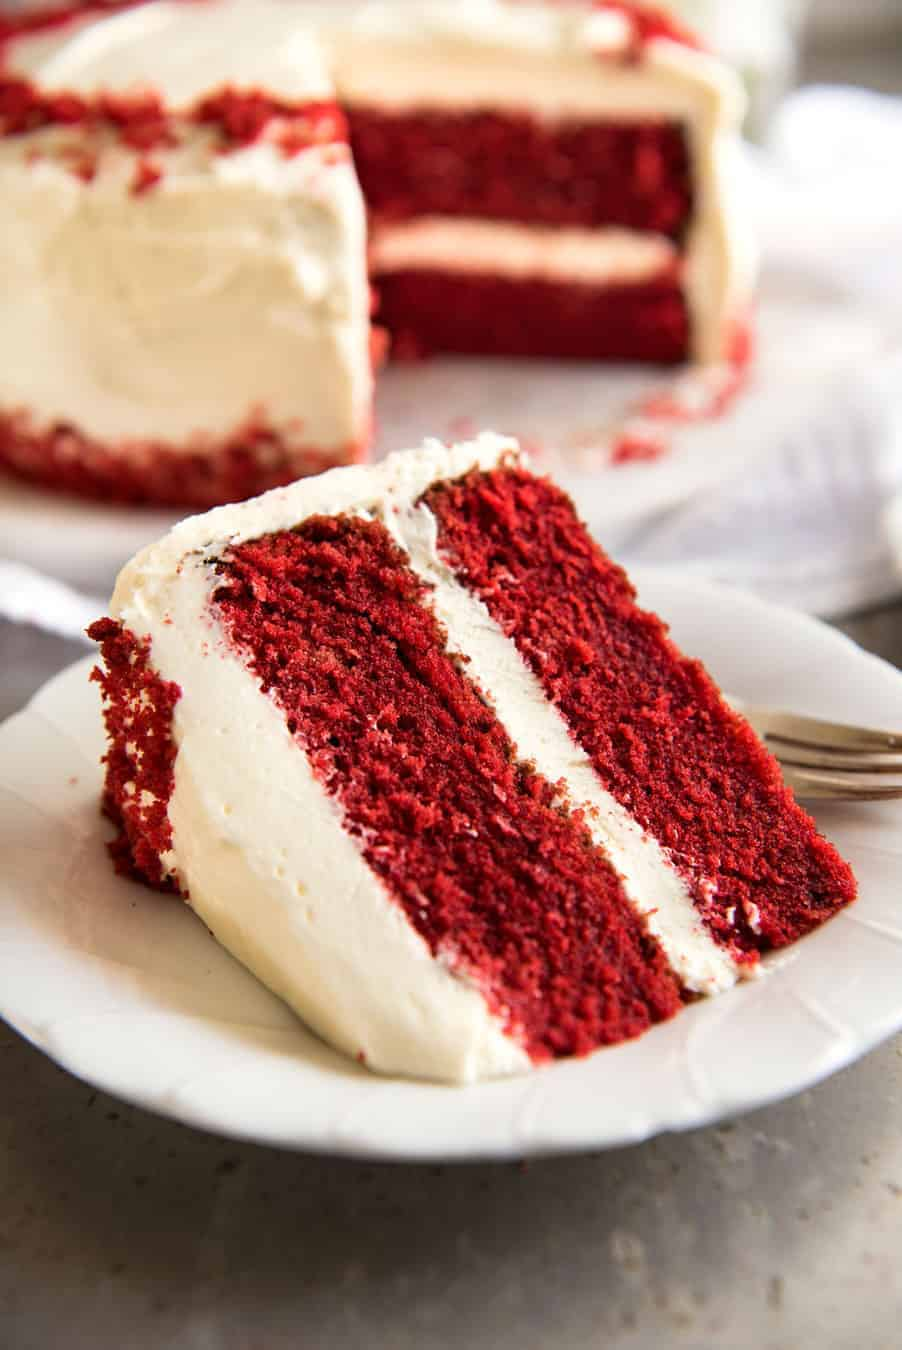 red velvet wedding cake recipe uk velvet cake recipetin eats 19164